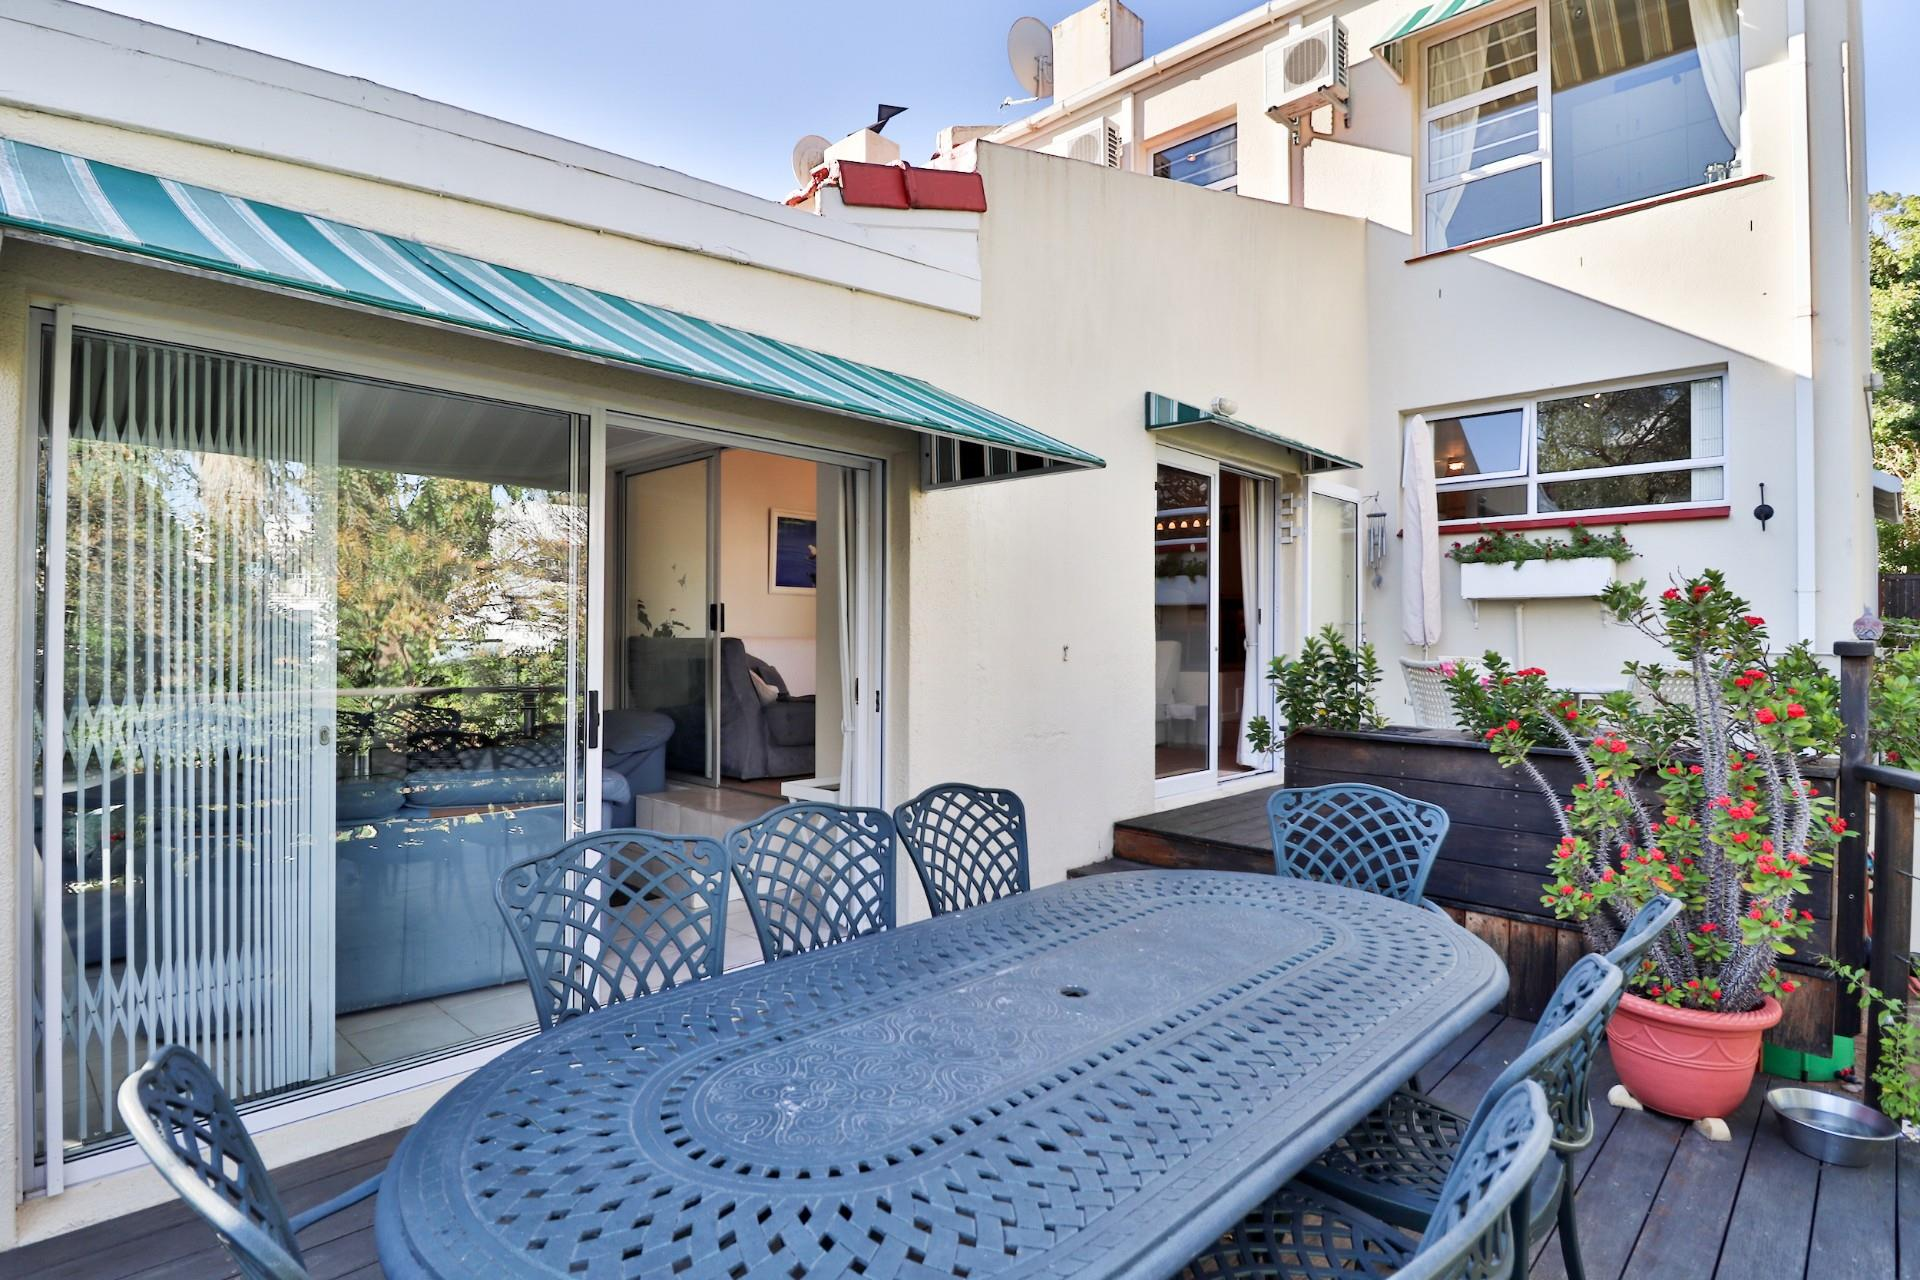 3 Bedroom Townhouse For Sale in Hout Bay Central